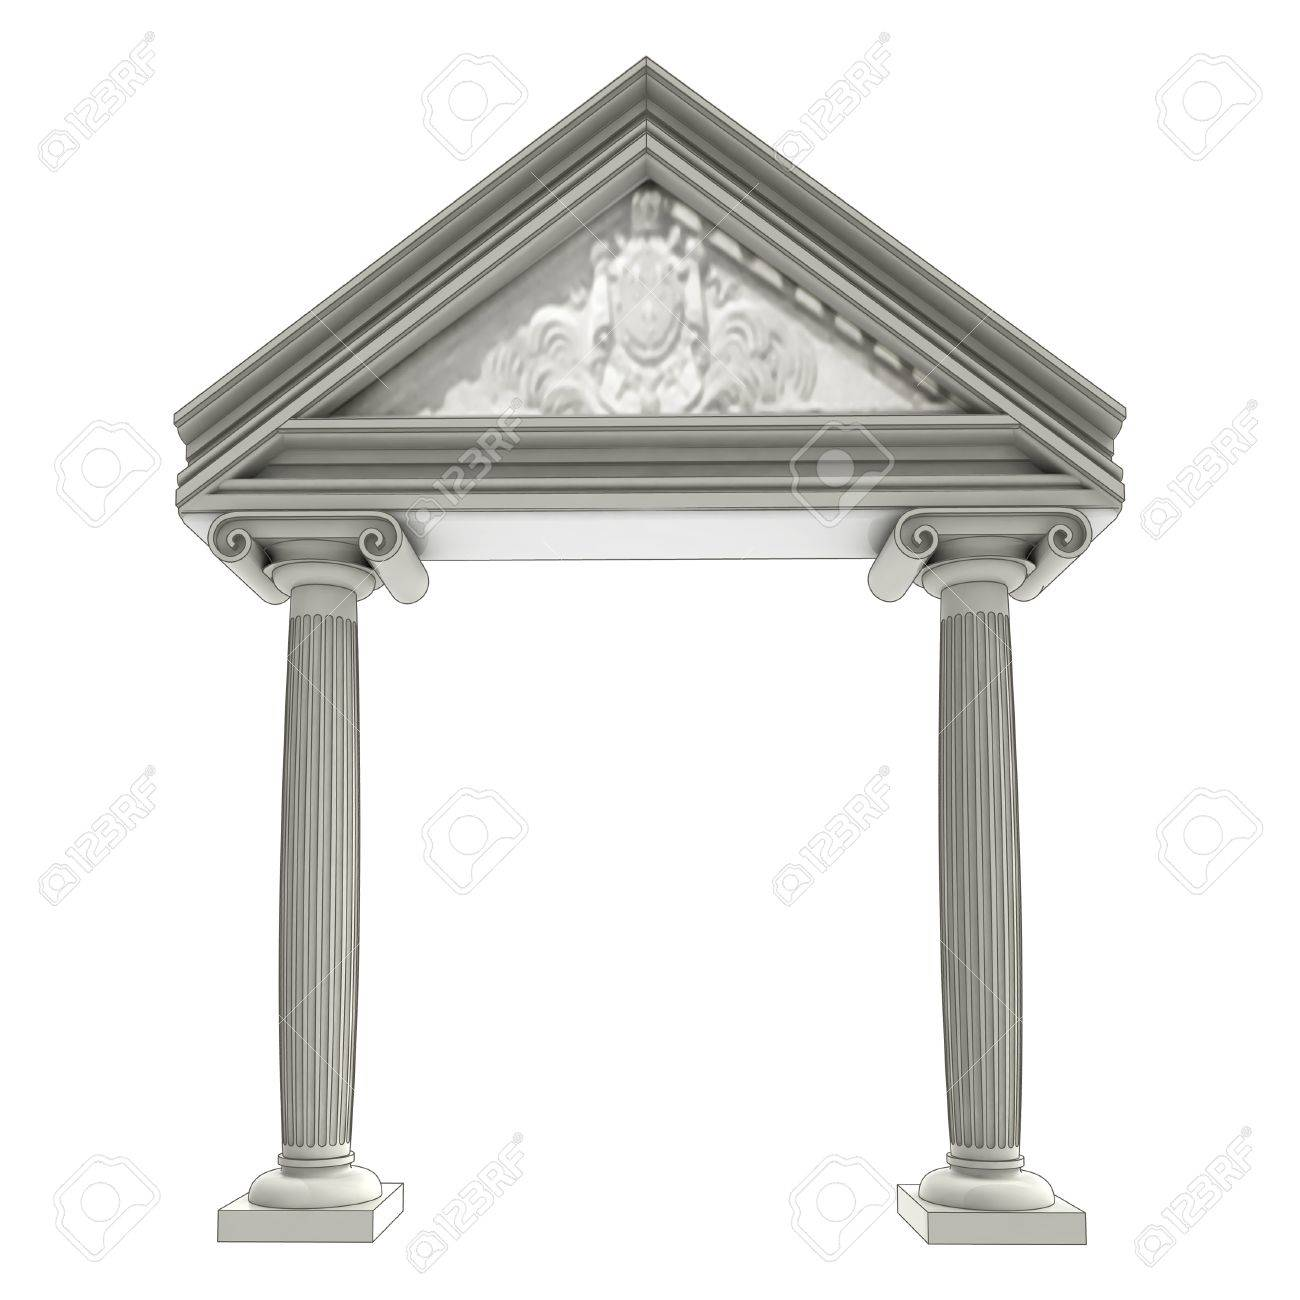 Isolated Ancient Ionic Column Gate With Architrave Above Illustration Stock Photo